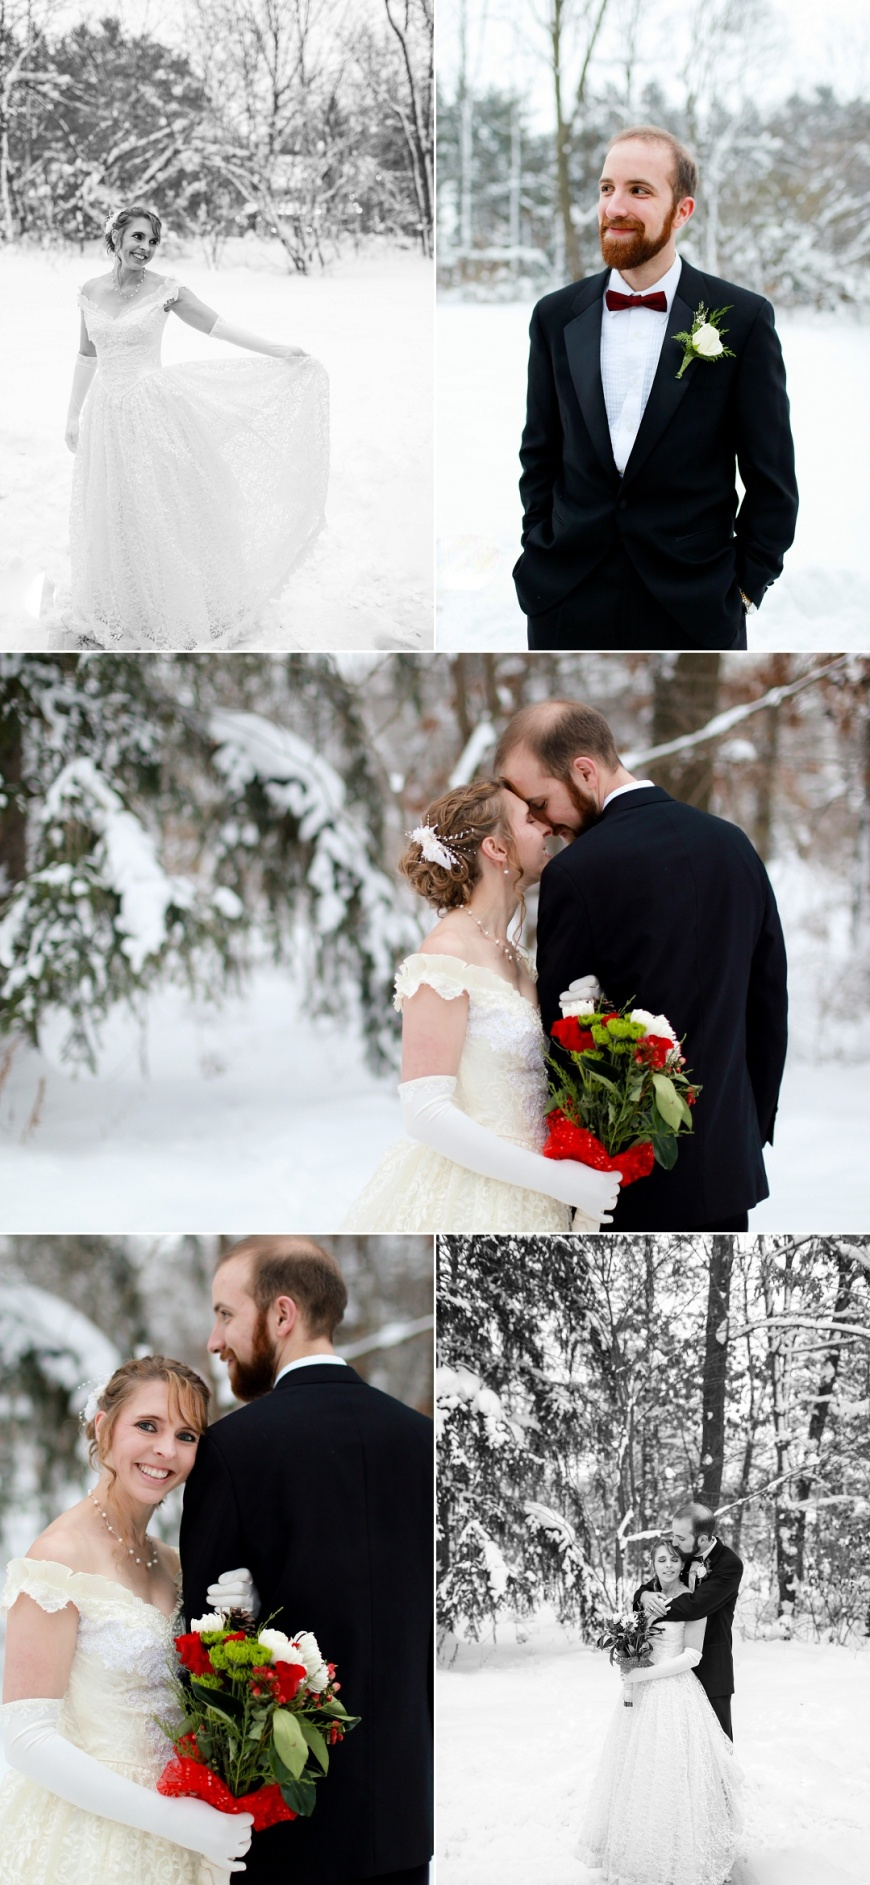 Kalamazoo-Winter-Wedding-Photographer_1050.jpg